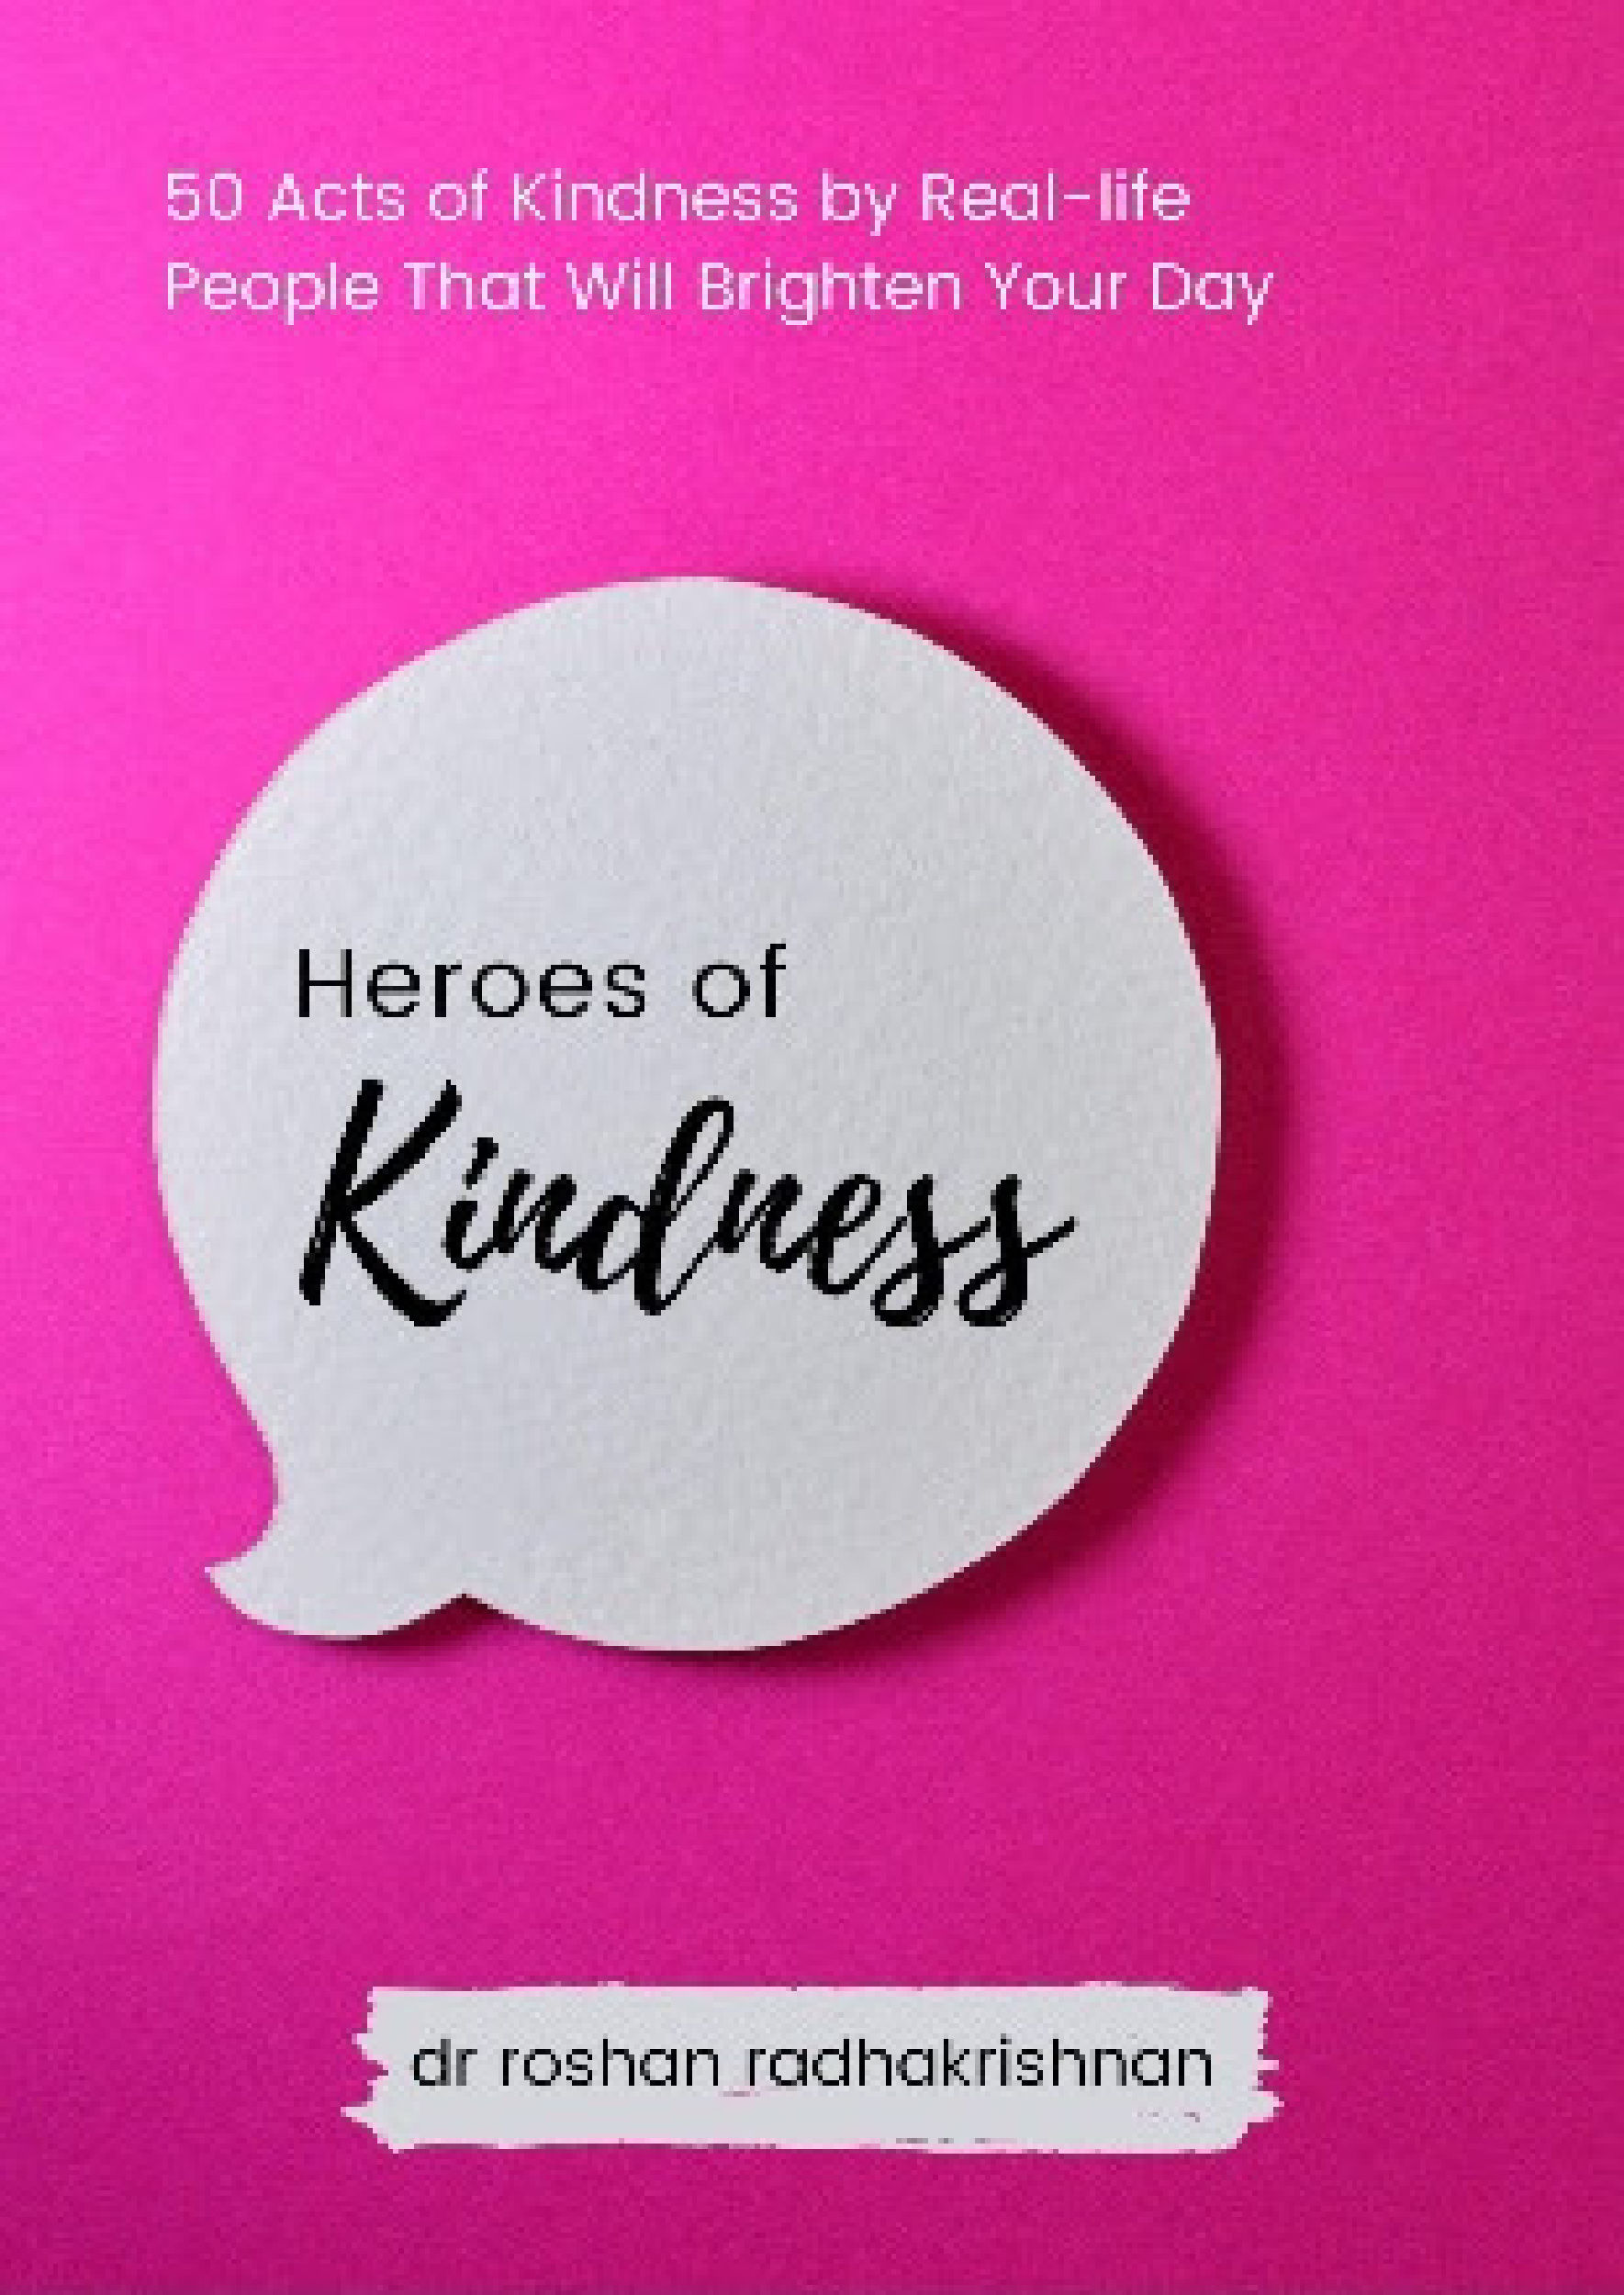 Heroes of Kindness by Dr Roshan